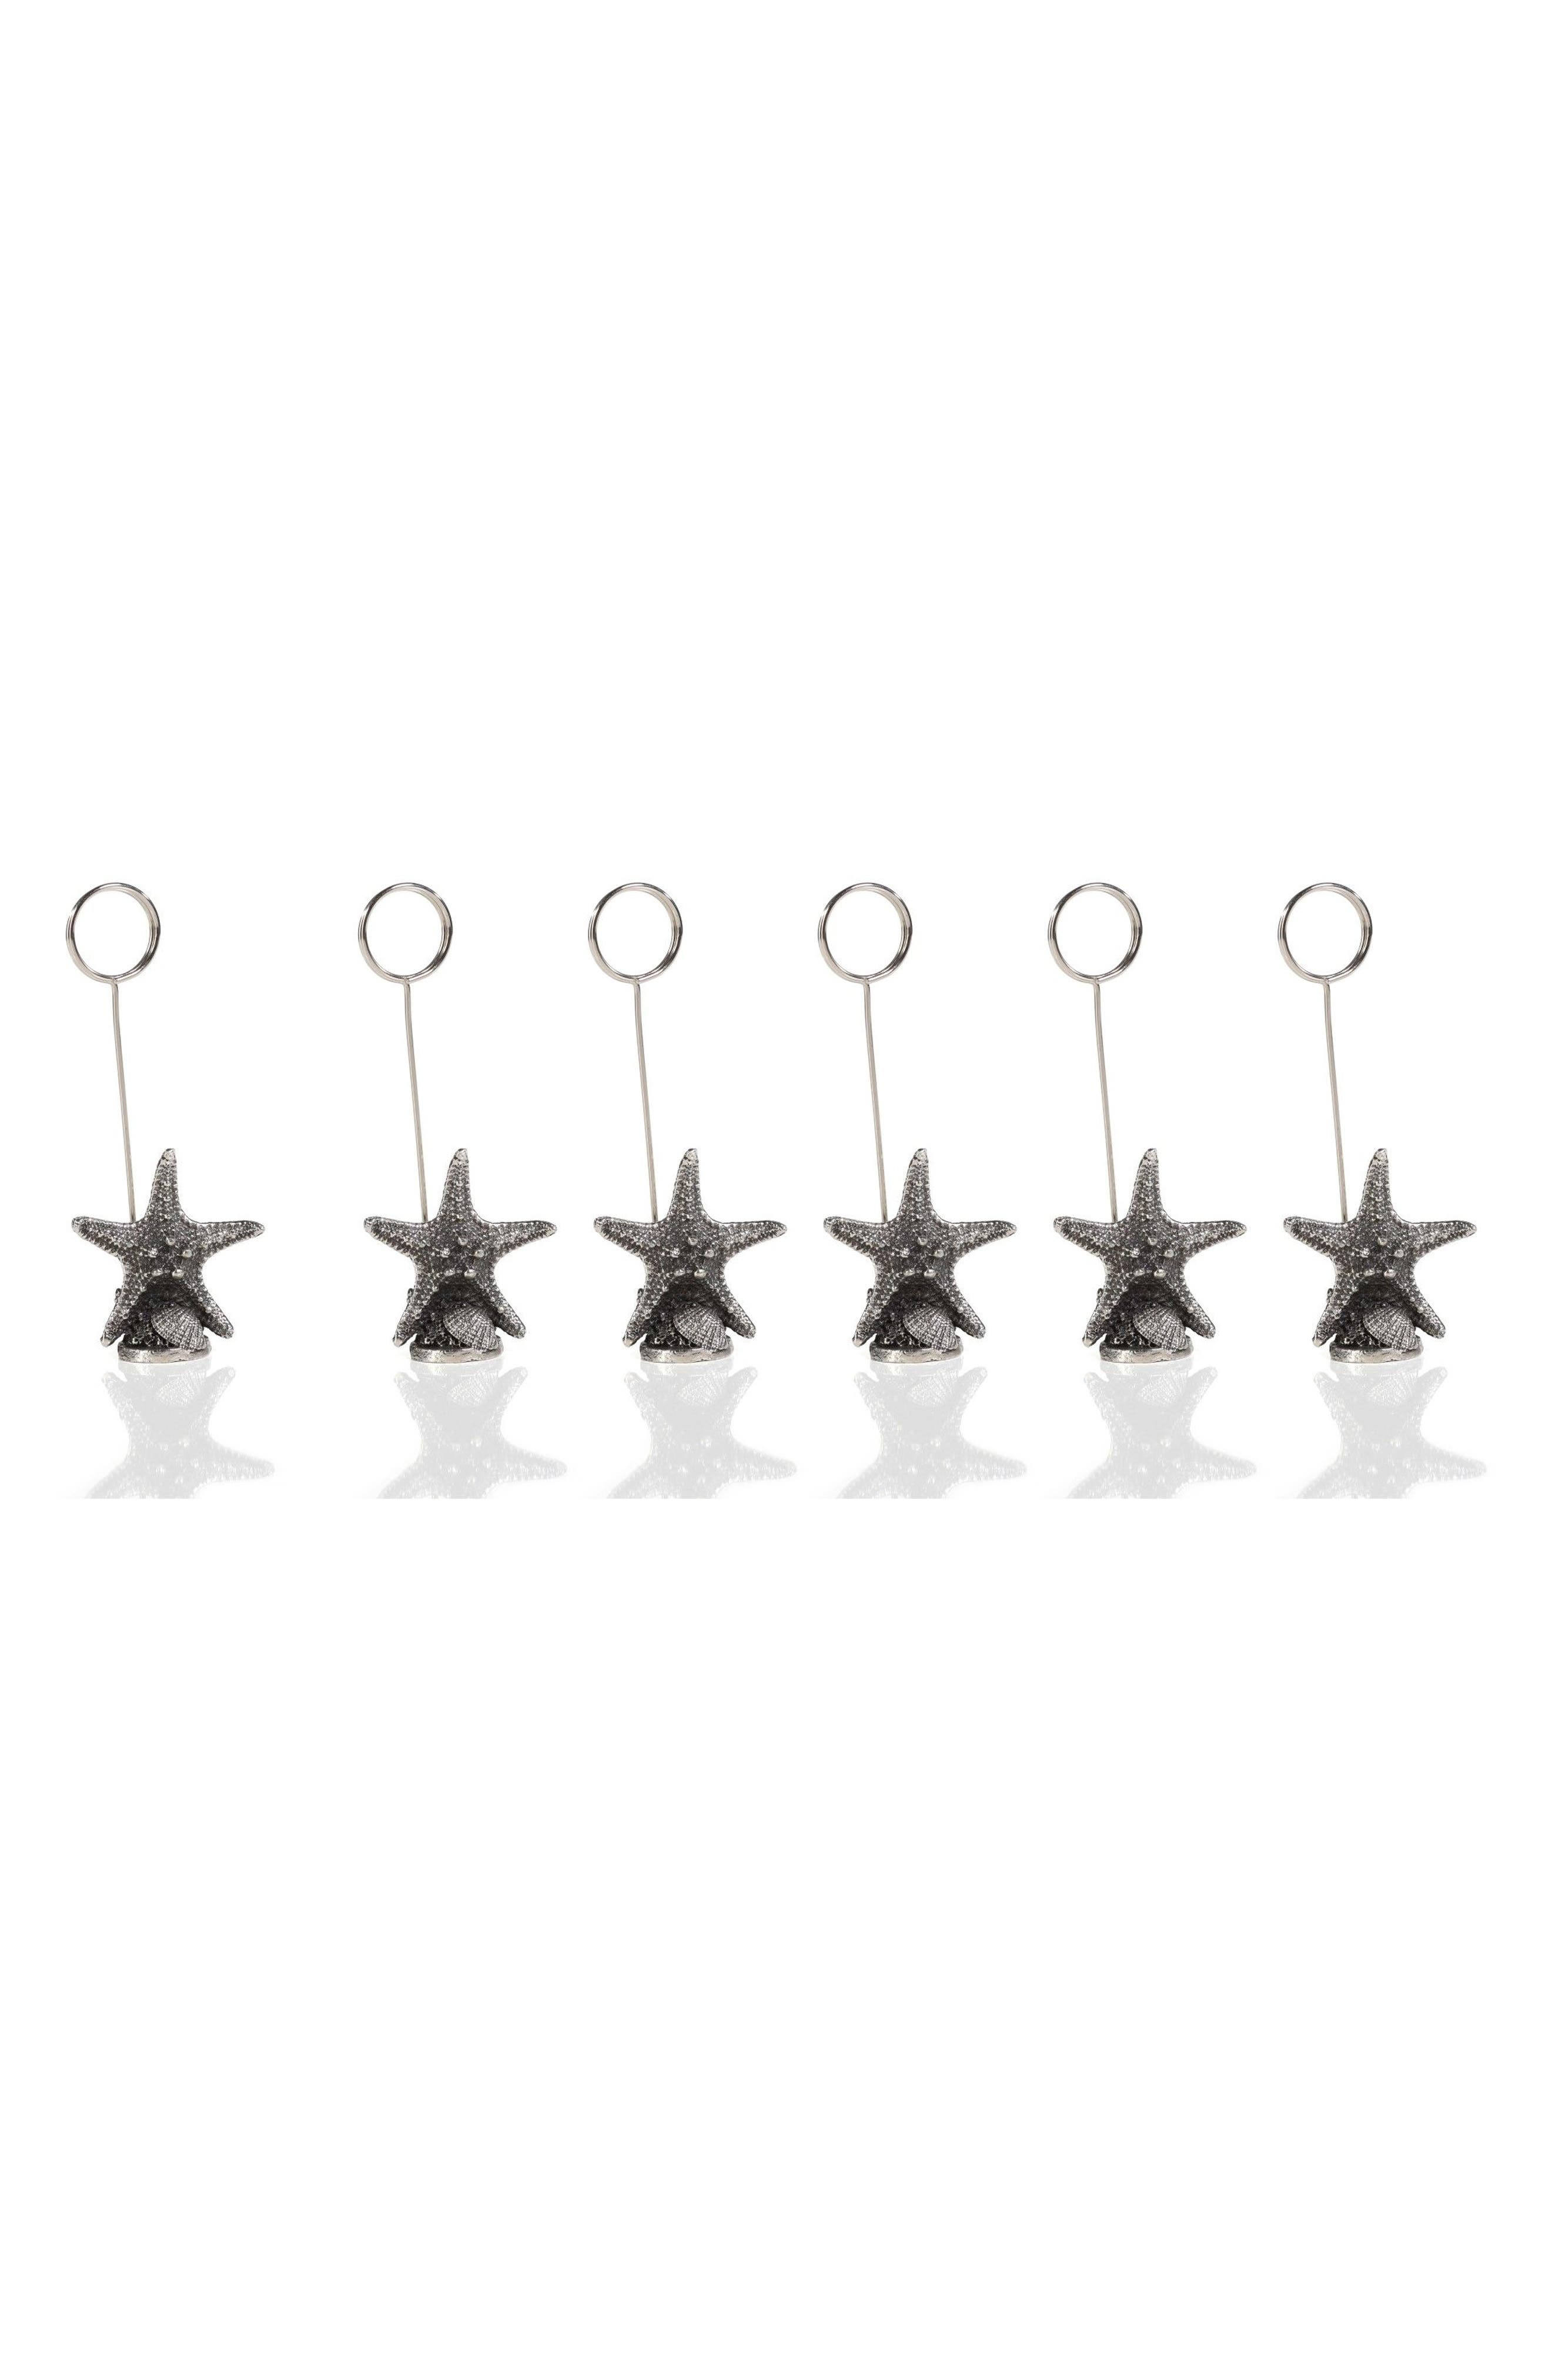 Set of 6 Starfish Name Card Holders,                         Main,                         color, Grey/ Silver